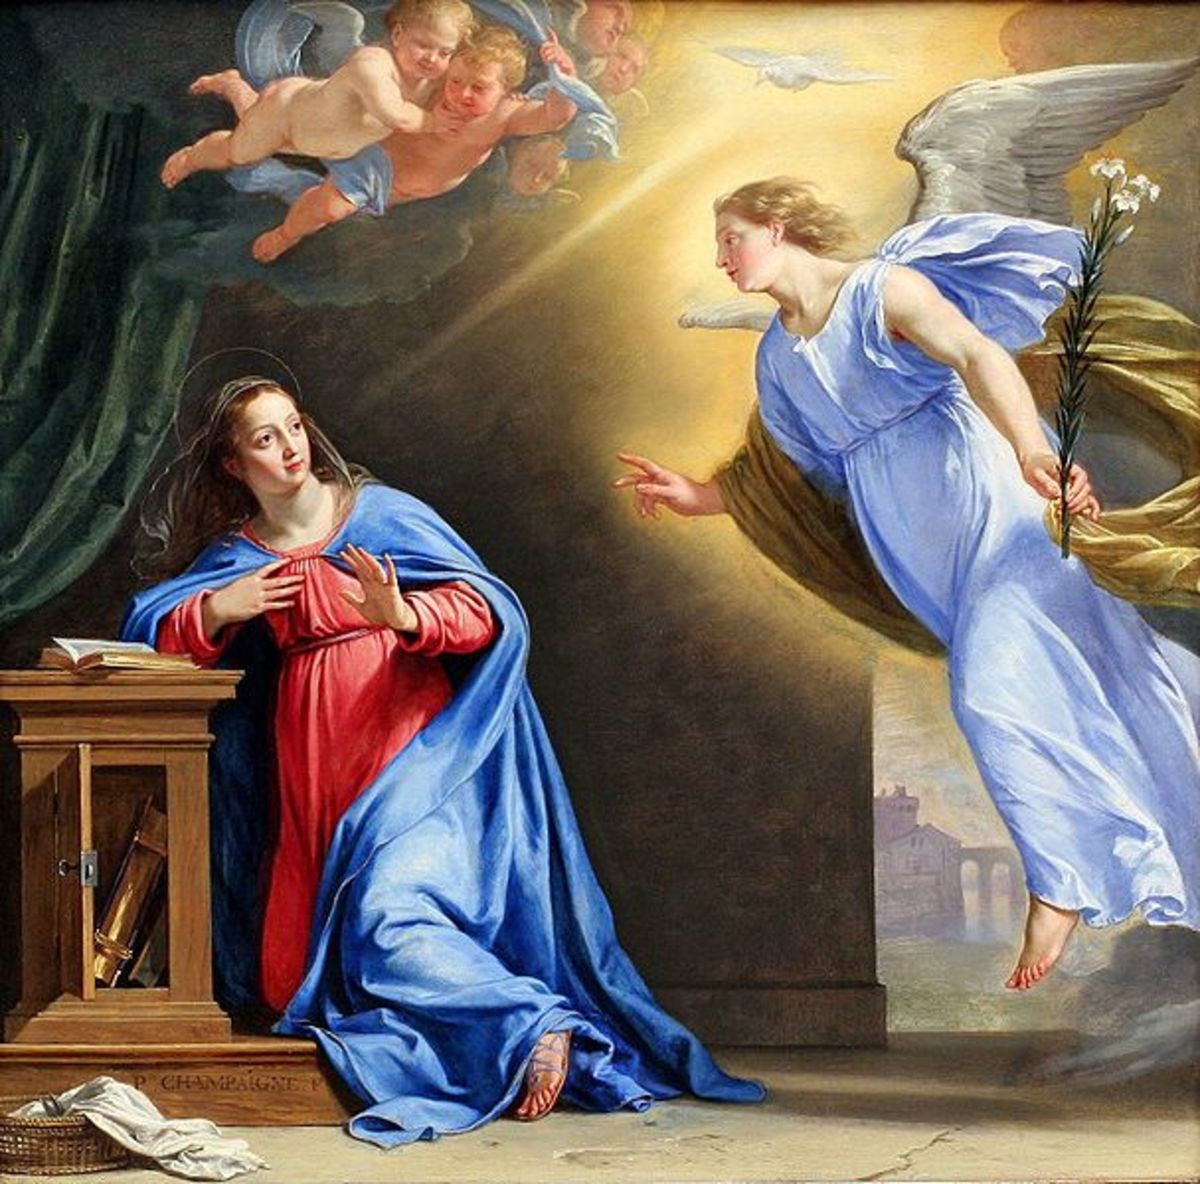 The Annunciation by Philippe de Champaigne, 1644. Image courtesy of Wiki Commons